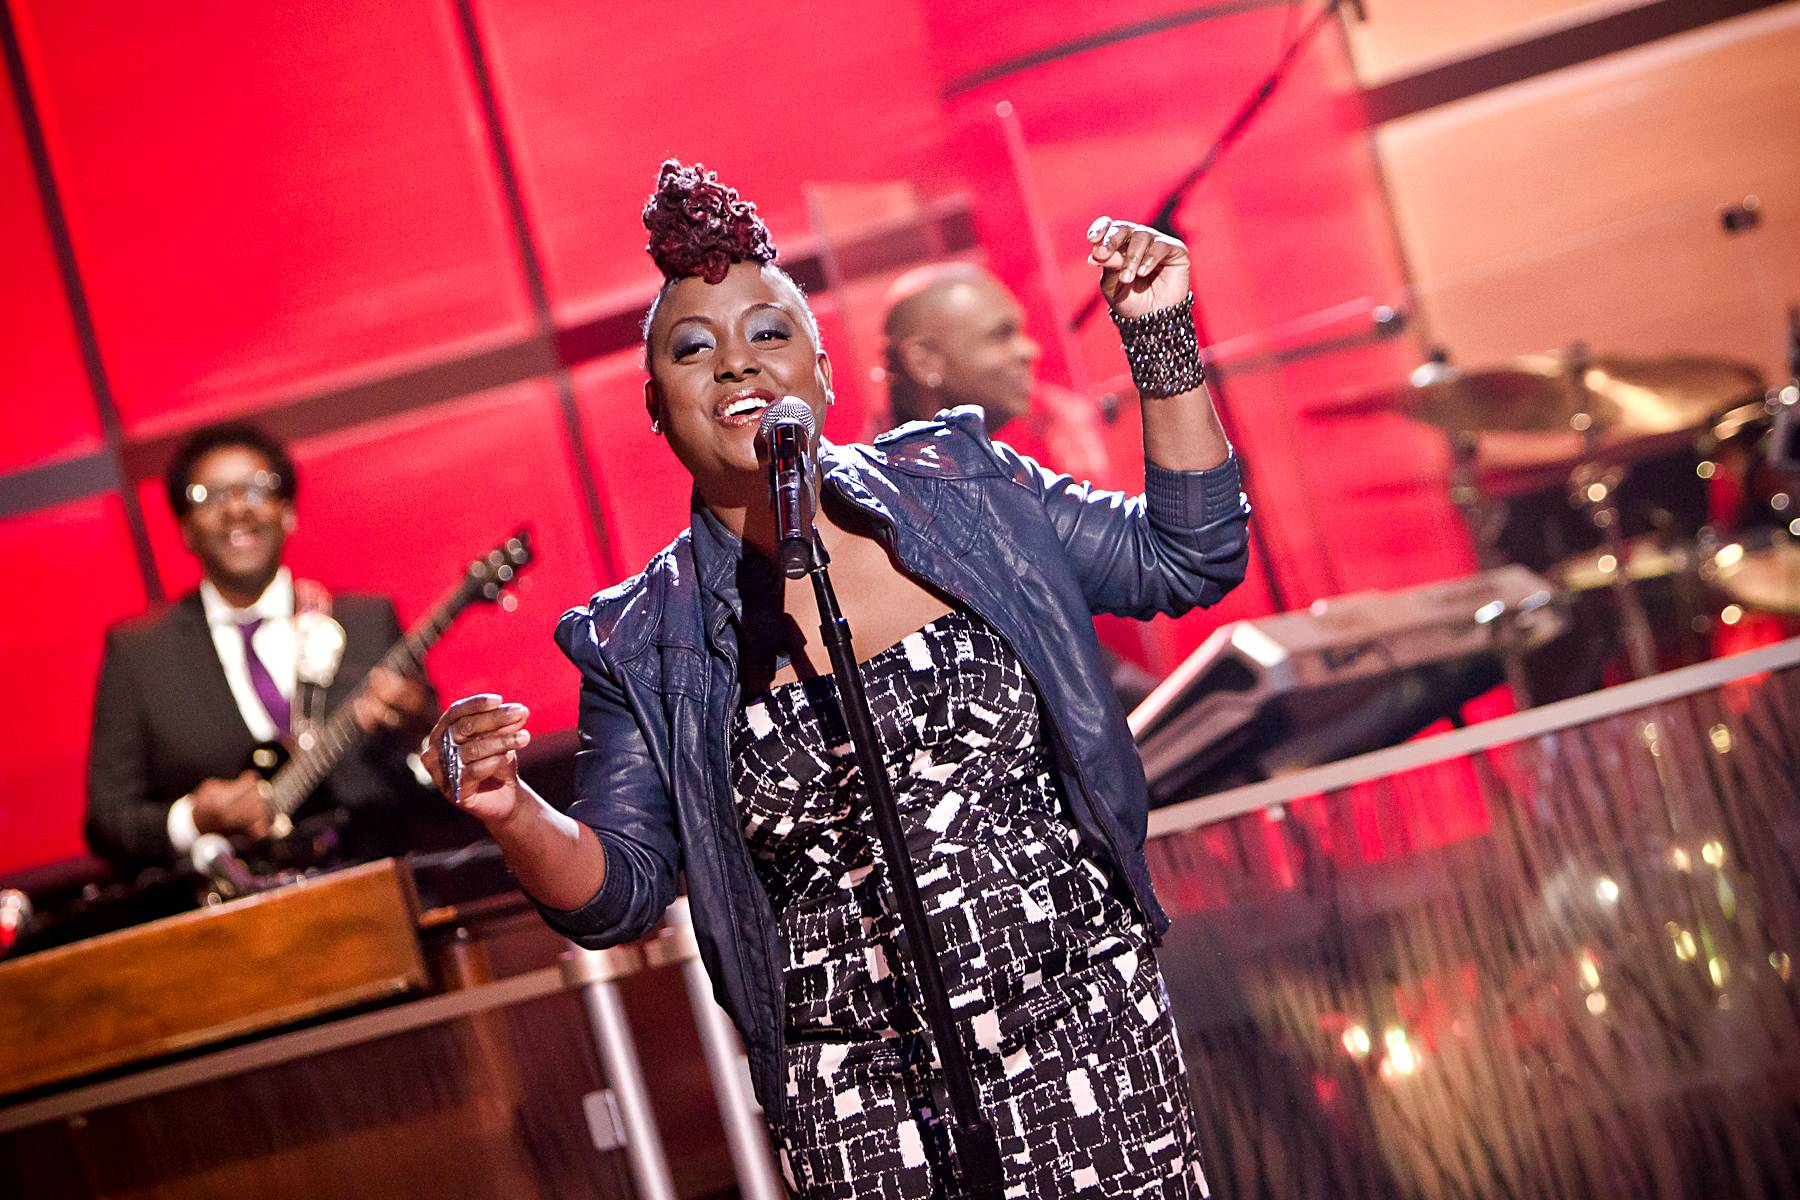 """More Pieces - Ledisi finishes the show with an encore performance, this time singing the song """"Shut Up"""".(Photo: Darnell Williams/BET)"""